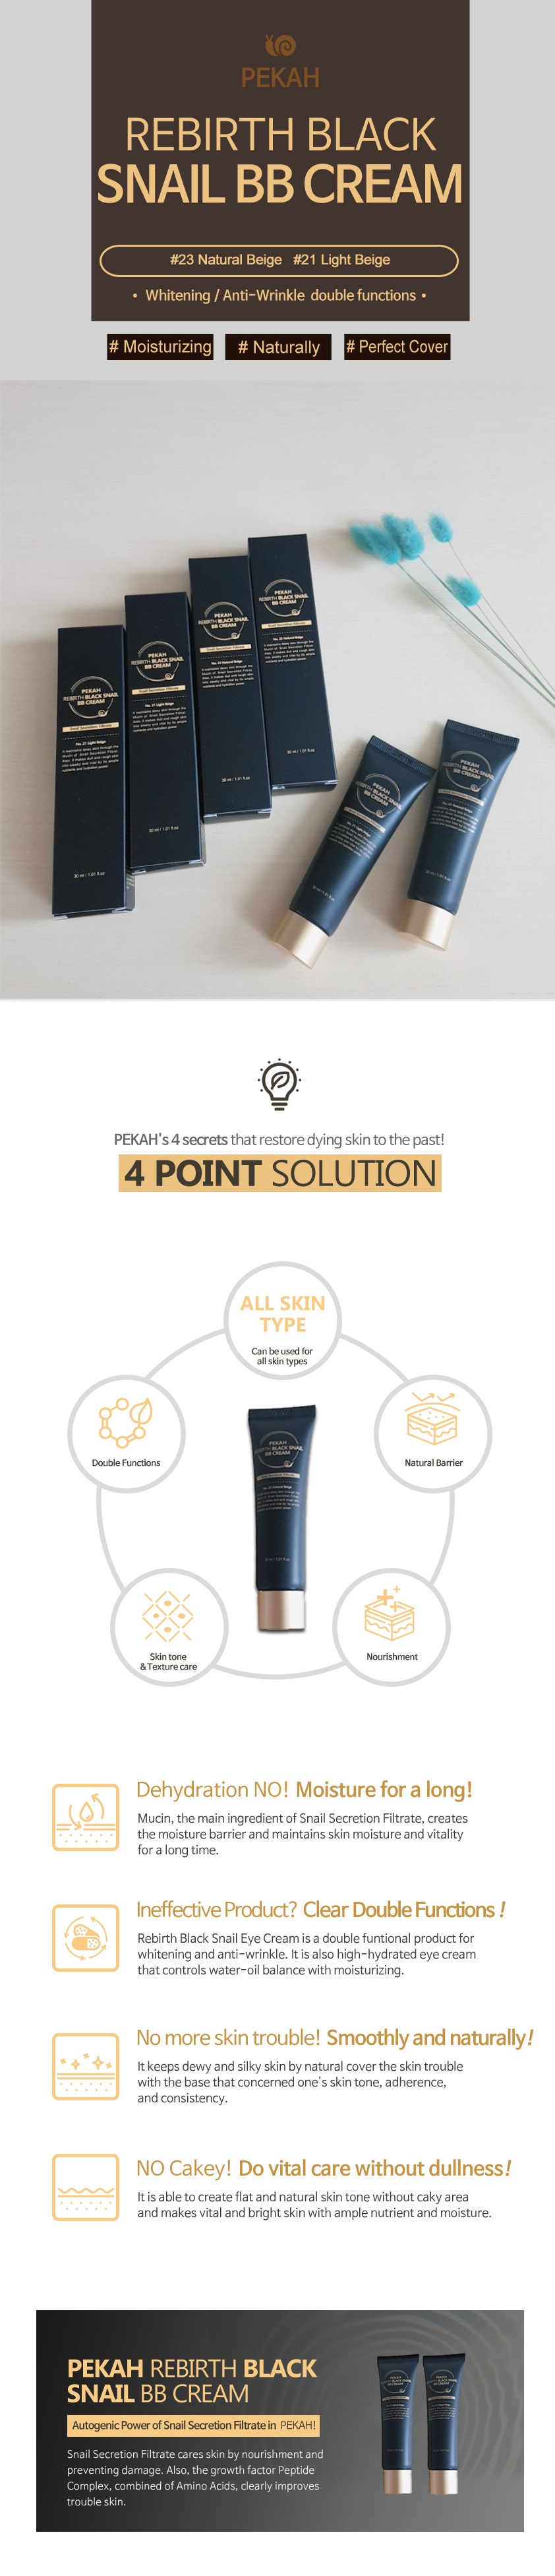 PEKAH Rebirth Black Snail BB Cream